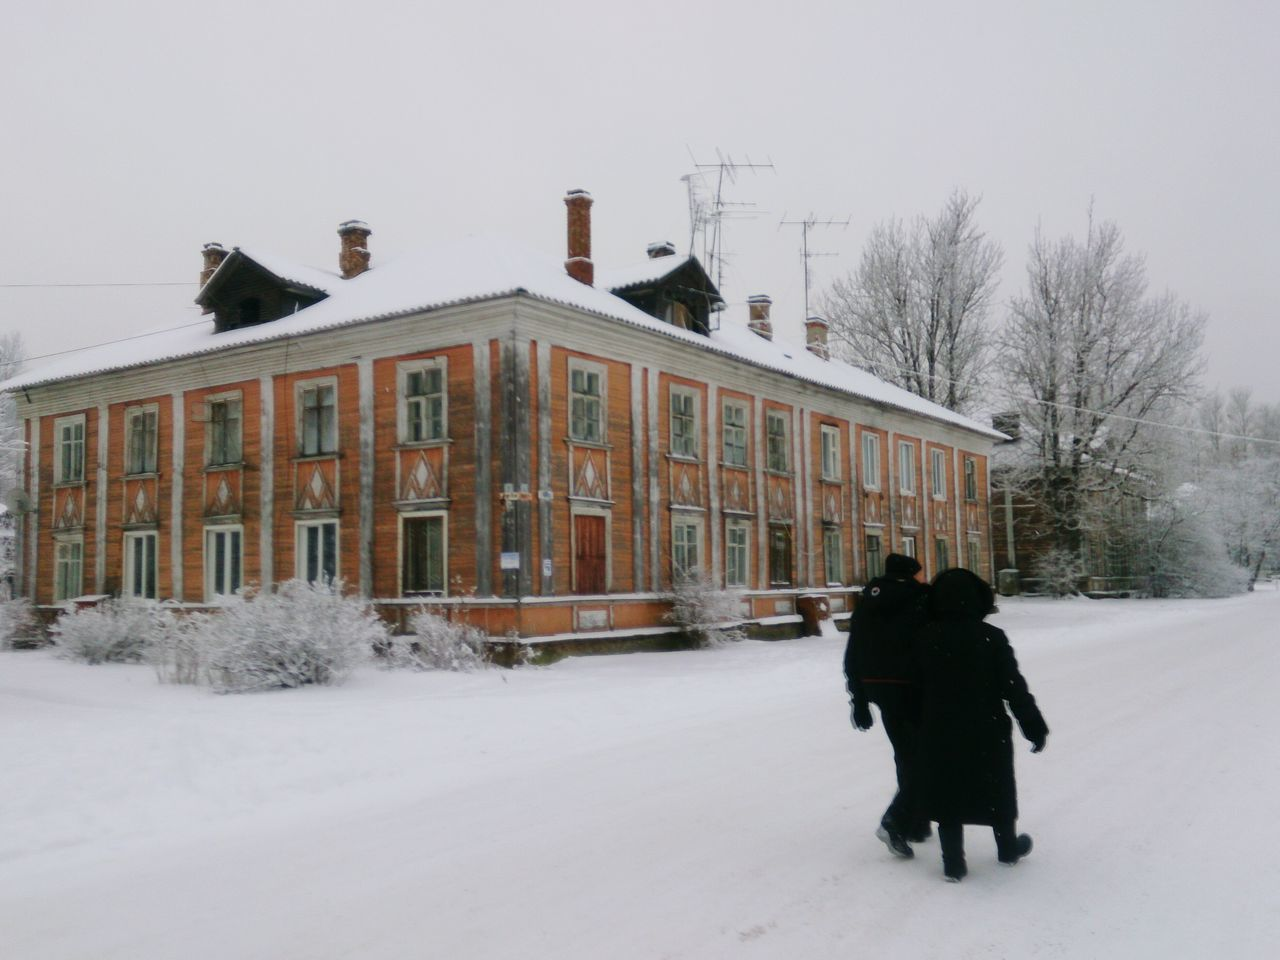 winter, snow, cold temperature, weather, building exterior, built structure, walking, full length, architecture, warm clothing, rear view, outdoors, real people, day, snowing, nature, tree, bare tree, women, snowdrift, sky, people